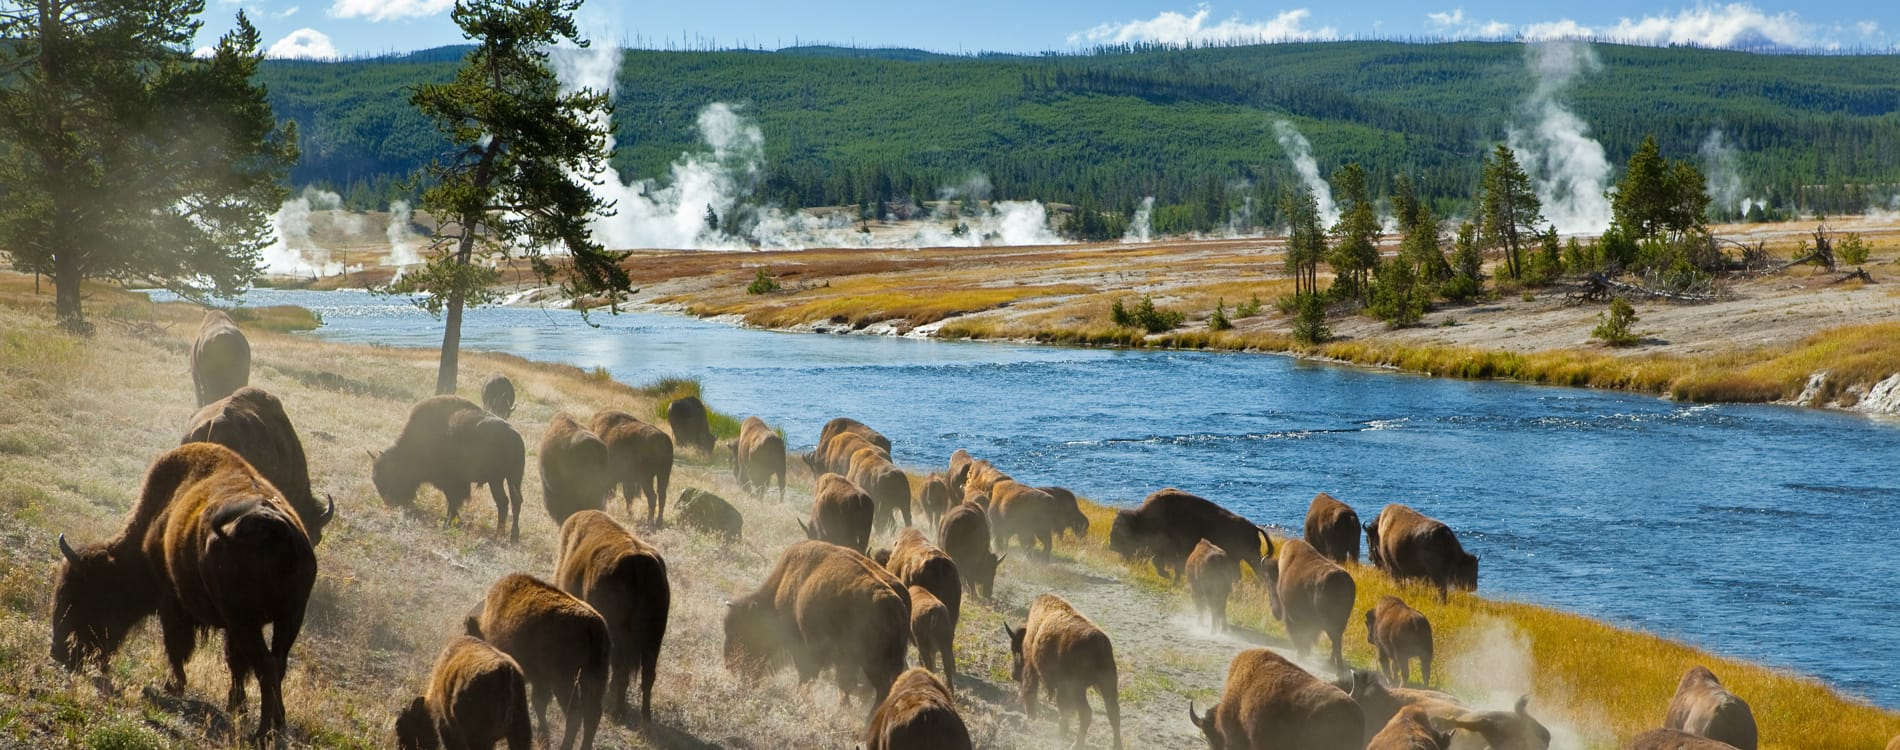 Bison along the Firehole River in Yellowstone National Park